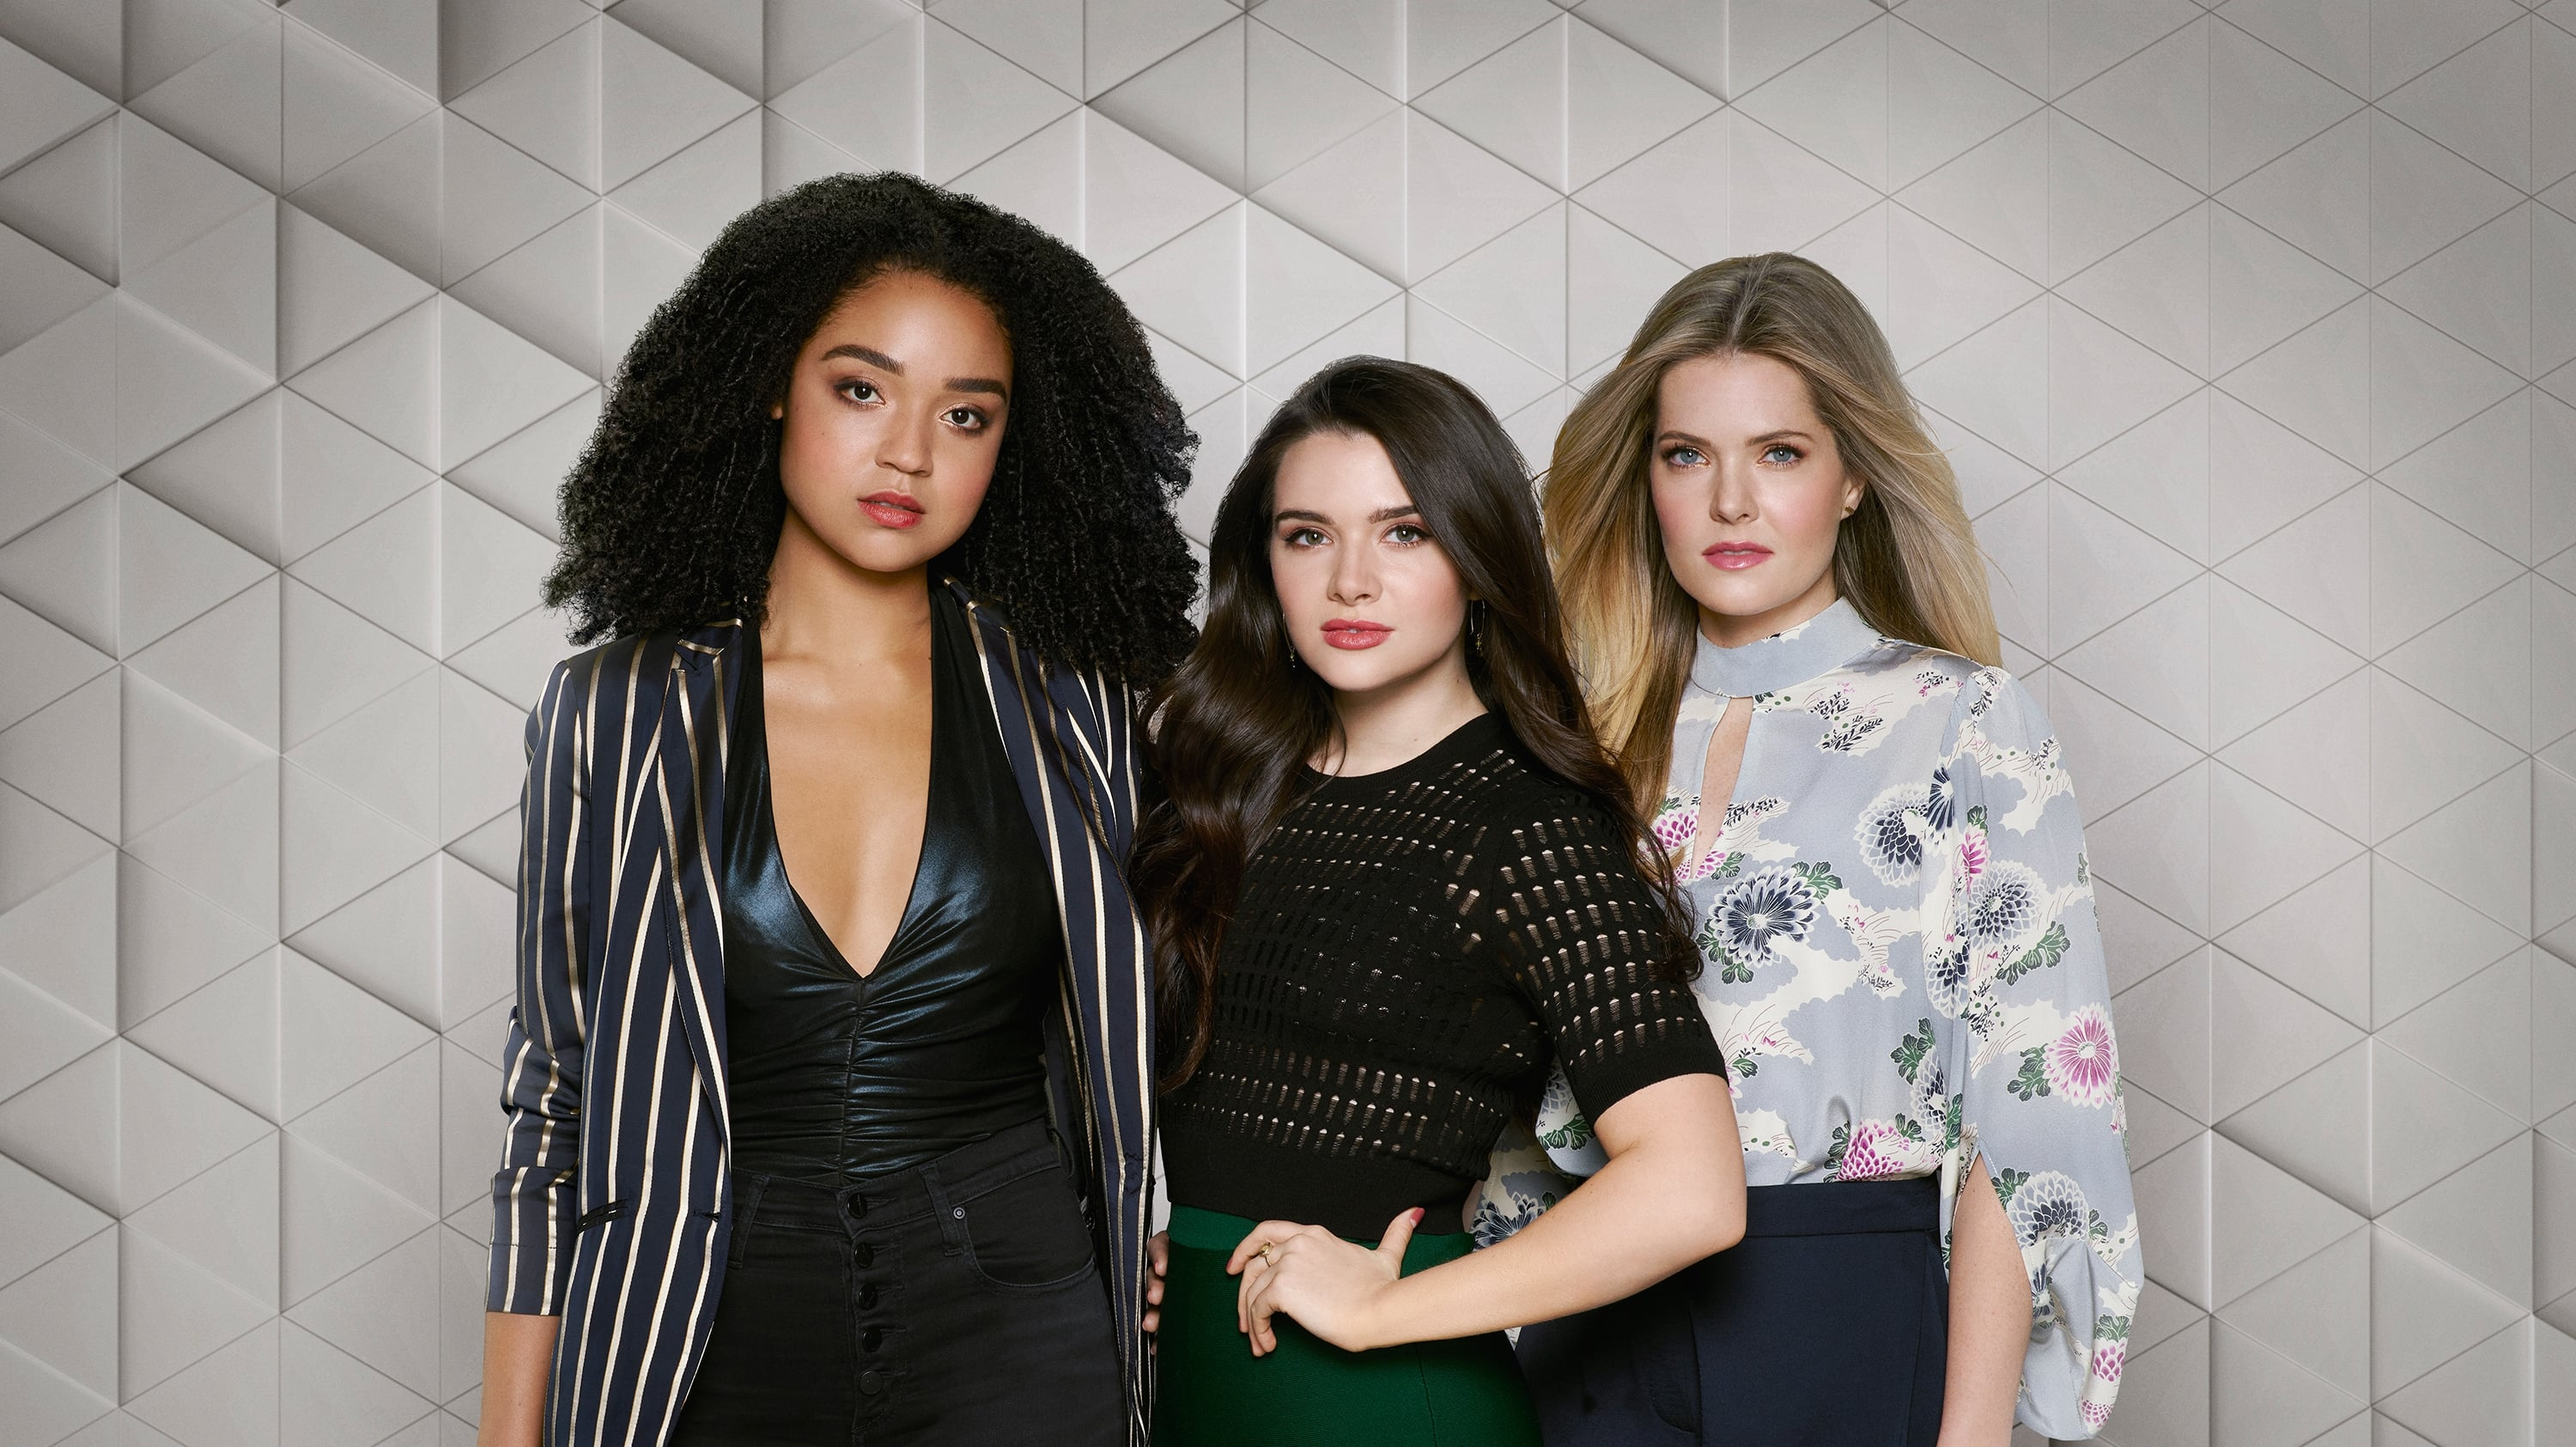 Second part of the fourth season of The Bold Type to start in June